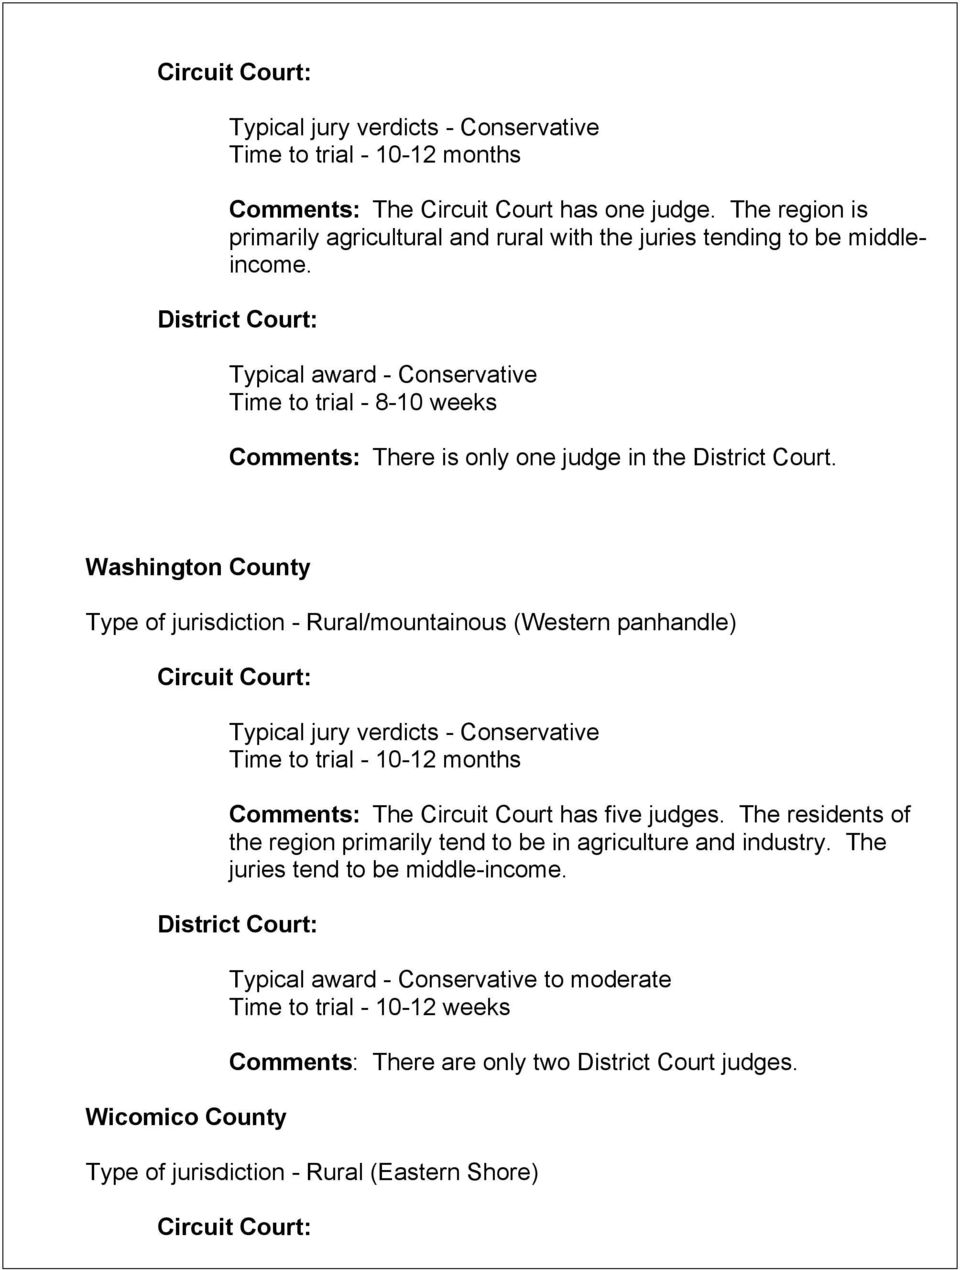 Washington County Type of jurisdiction - Rural/mountainous (Western panhandle) Typical jury verdicts - Conservative Time to trial - 10-12 months Comments: The Circuit Court has five judges.